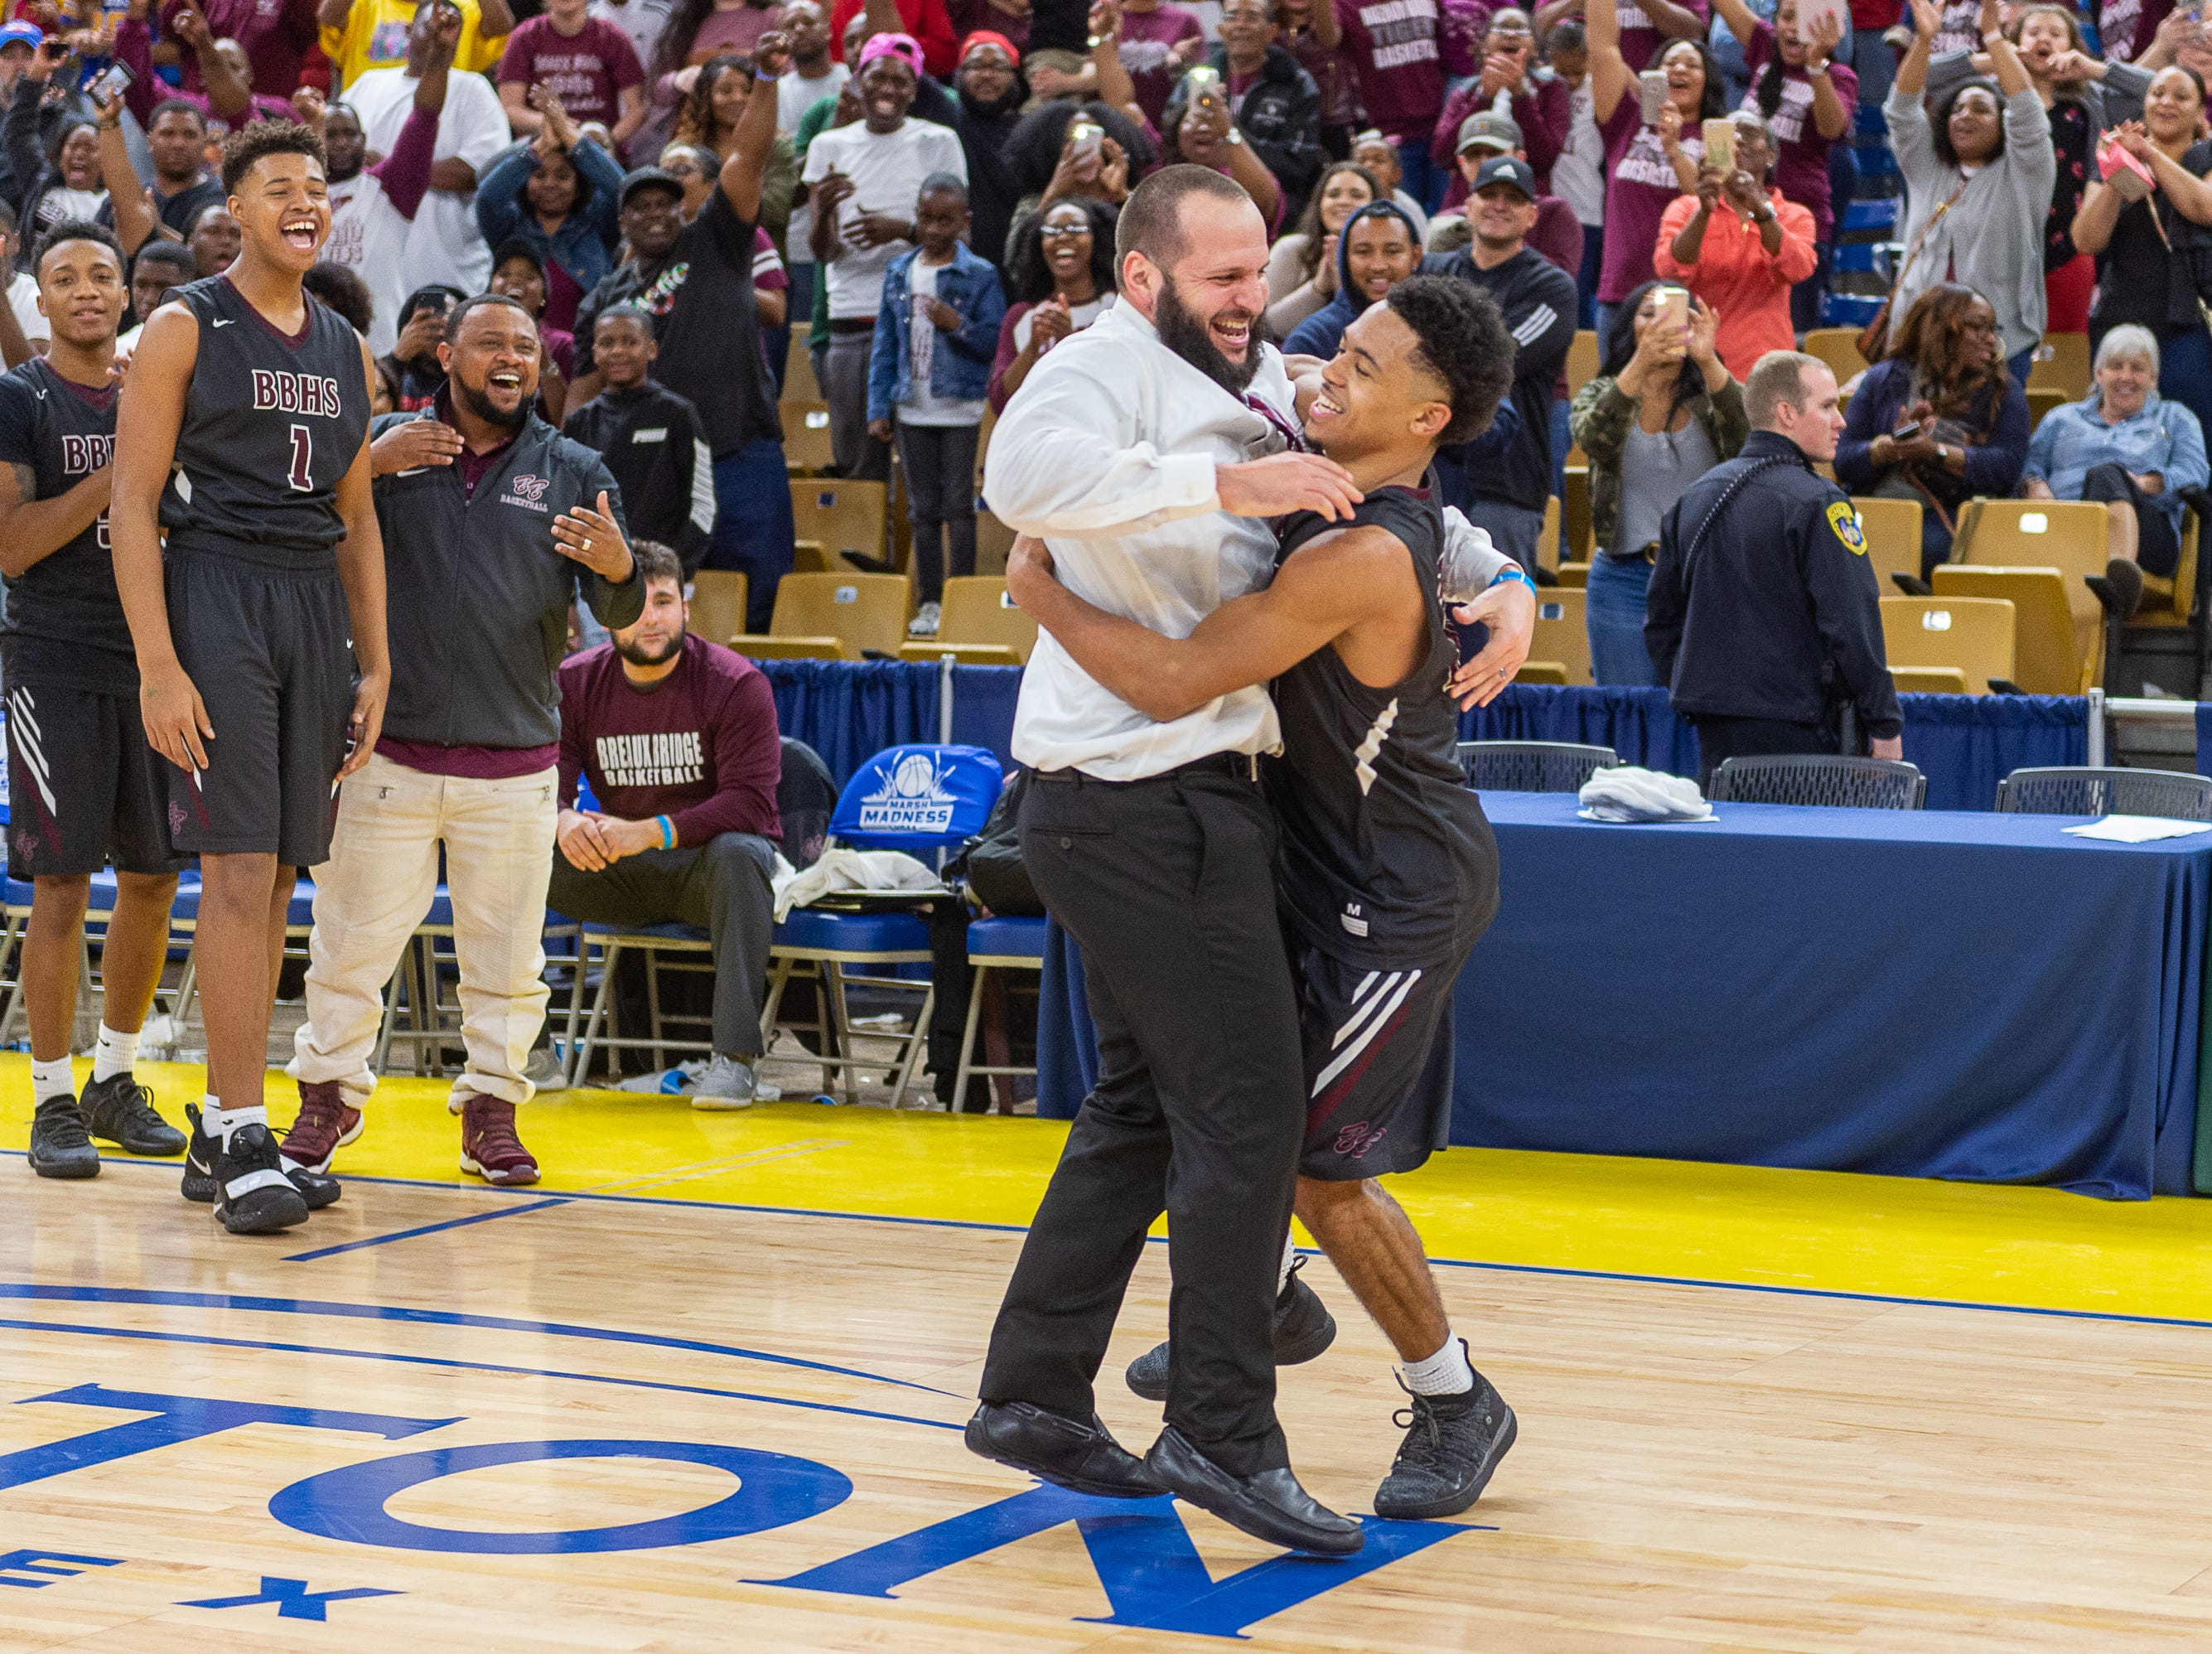 Seth Alexander named outstanding player of the game as Breaux Bridge beats Bossier 61-58 to win the Allstate Sugar Bowl/LHSAA Boys' Marsh Madness State Championship. Friday, March 8, 2019.